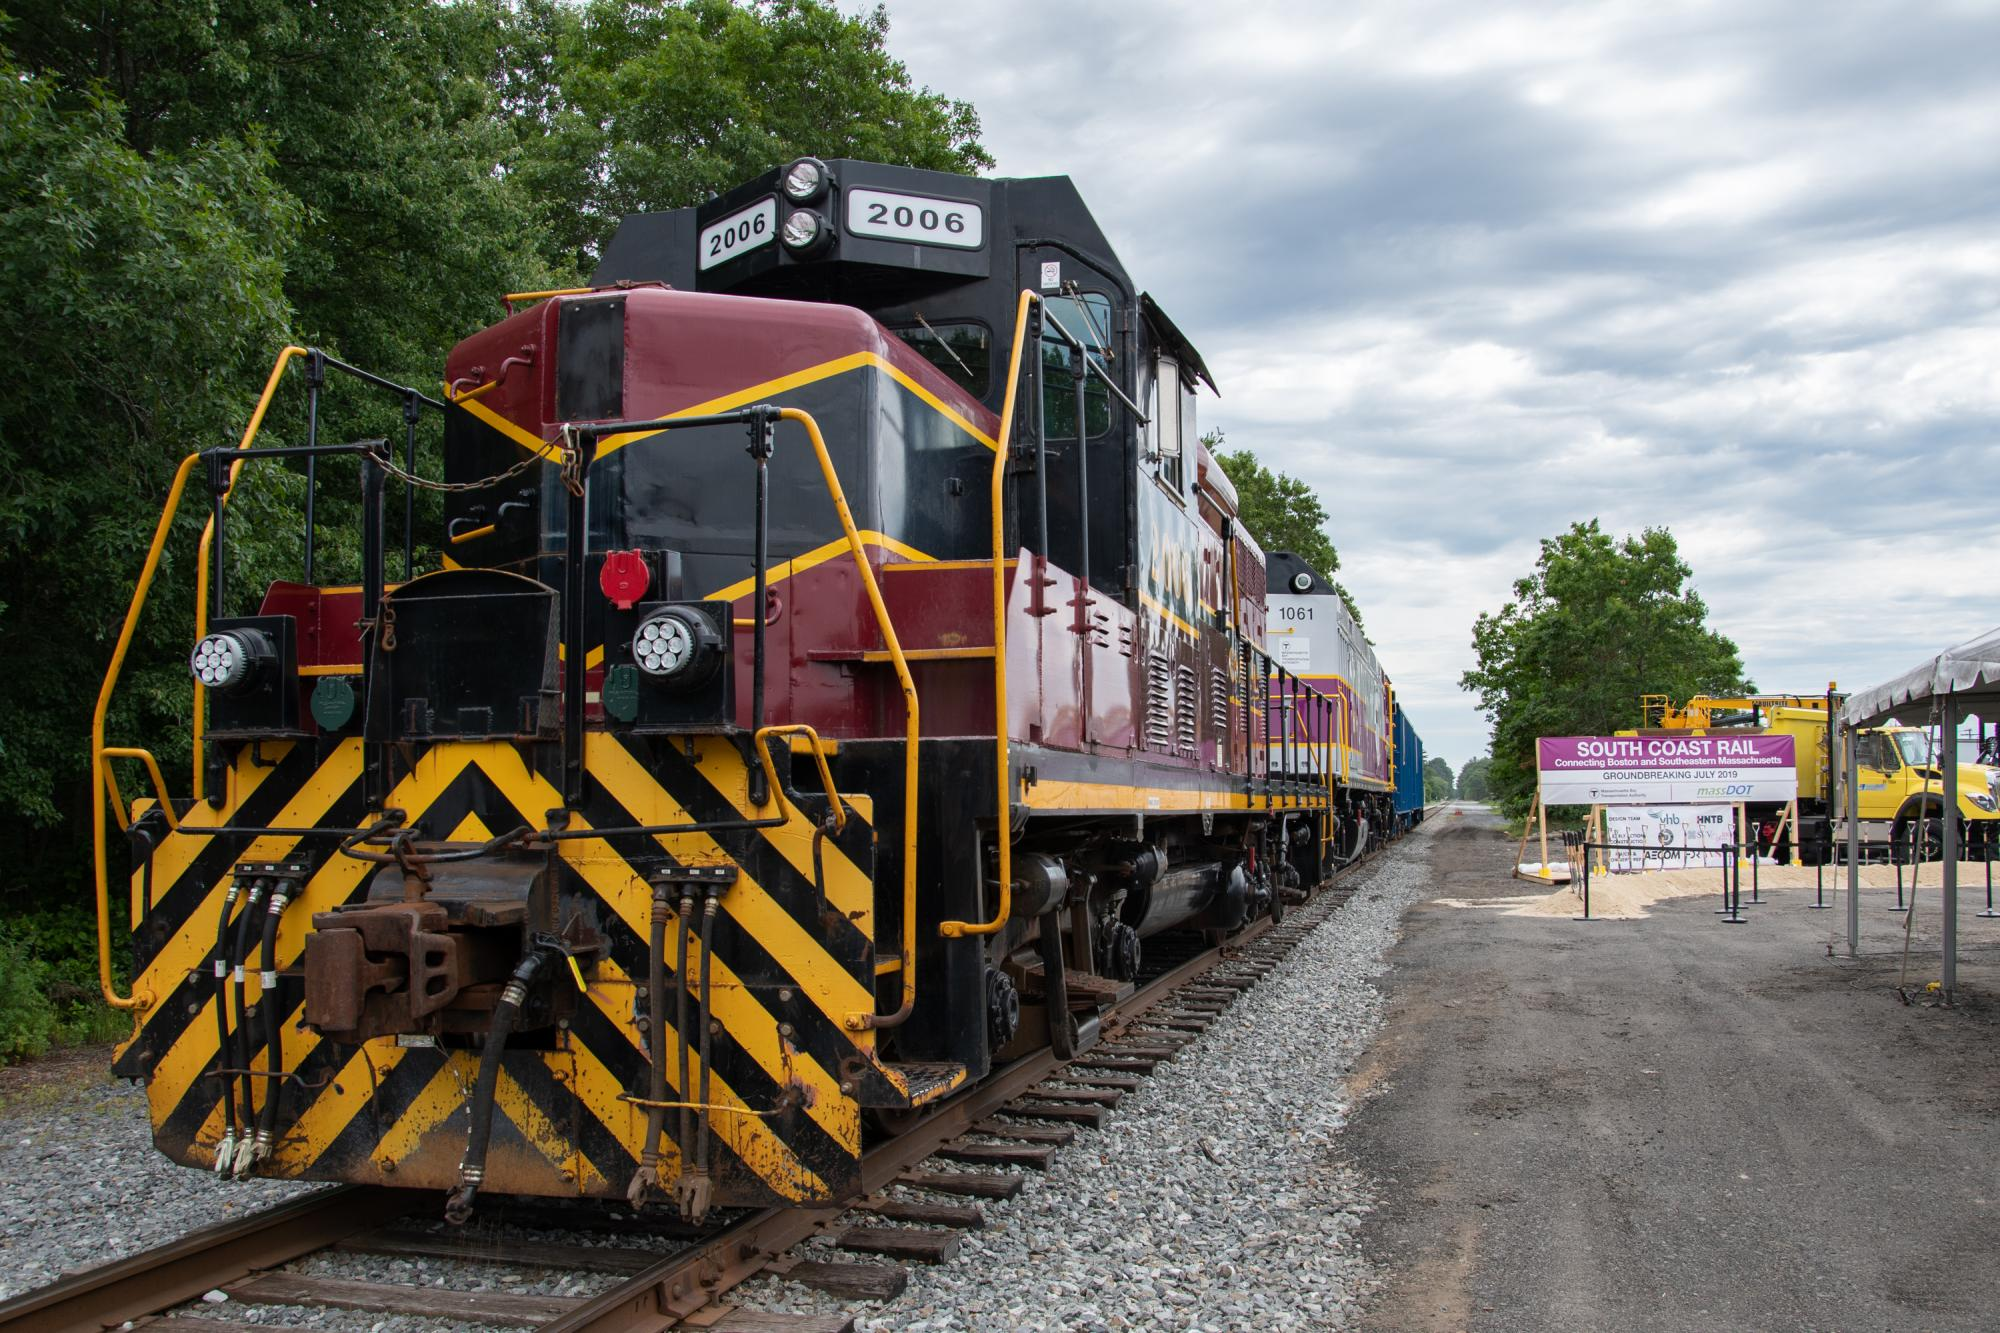 Locomotive on the tracks at South Coast Rail groundbreaking in Freetown